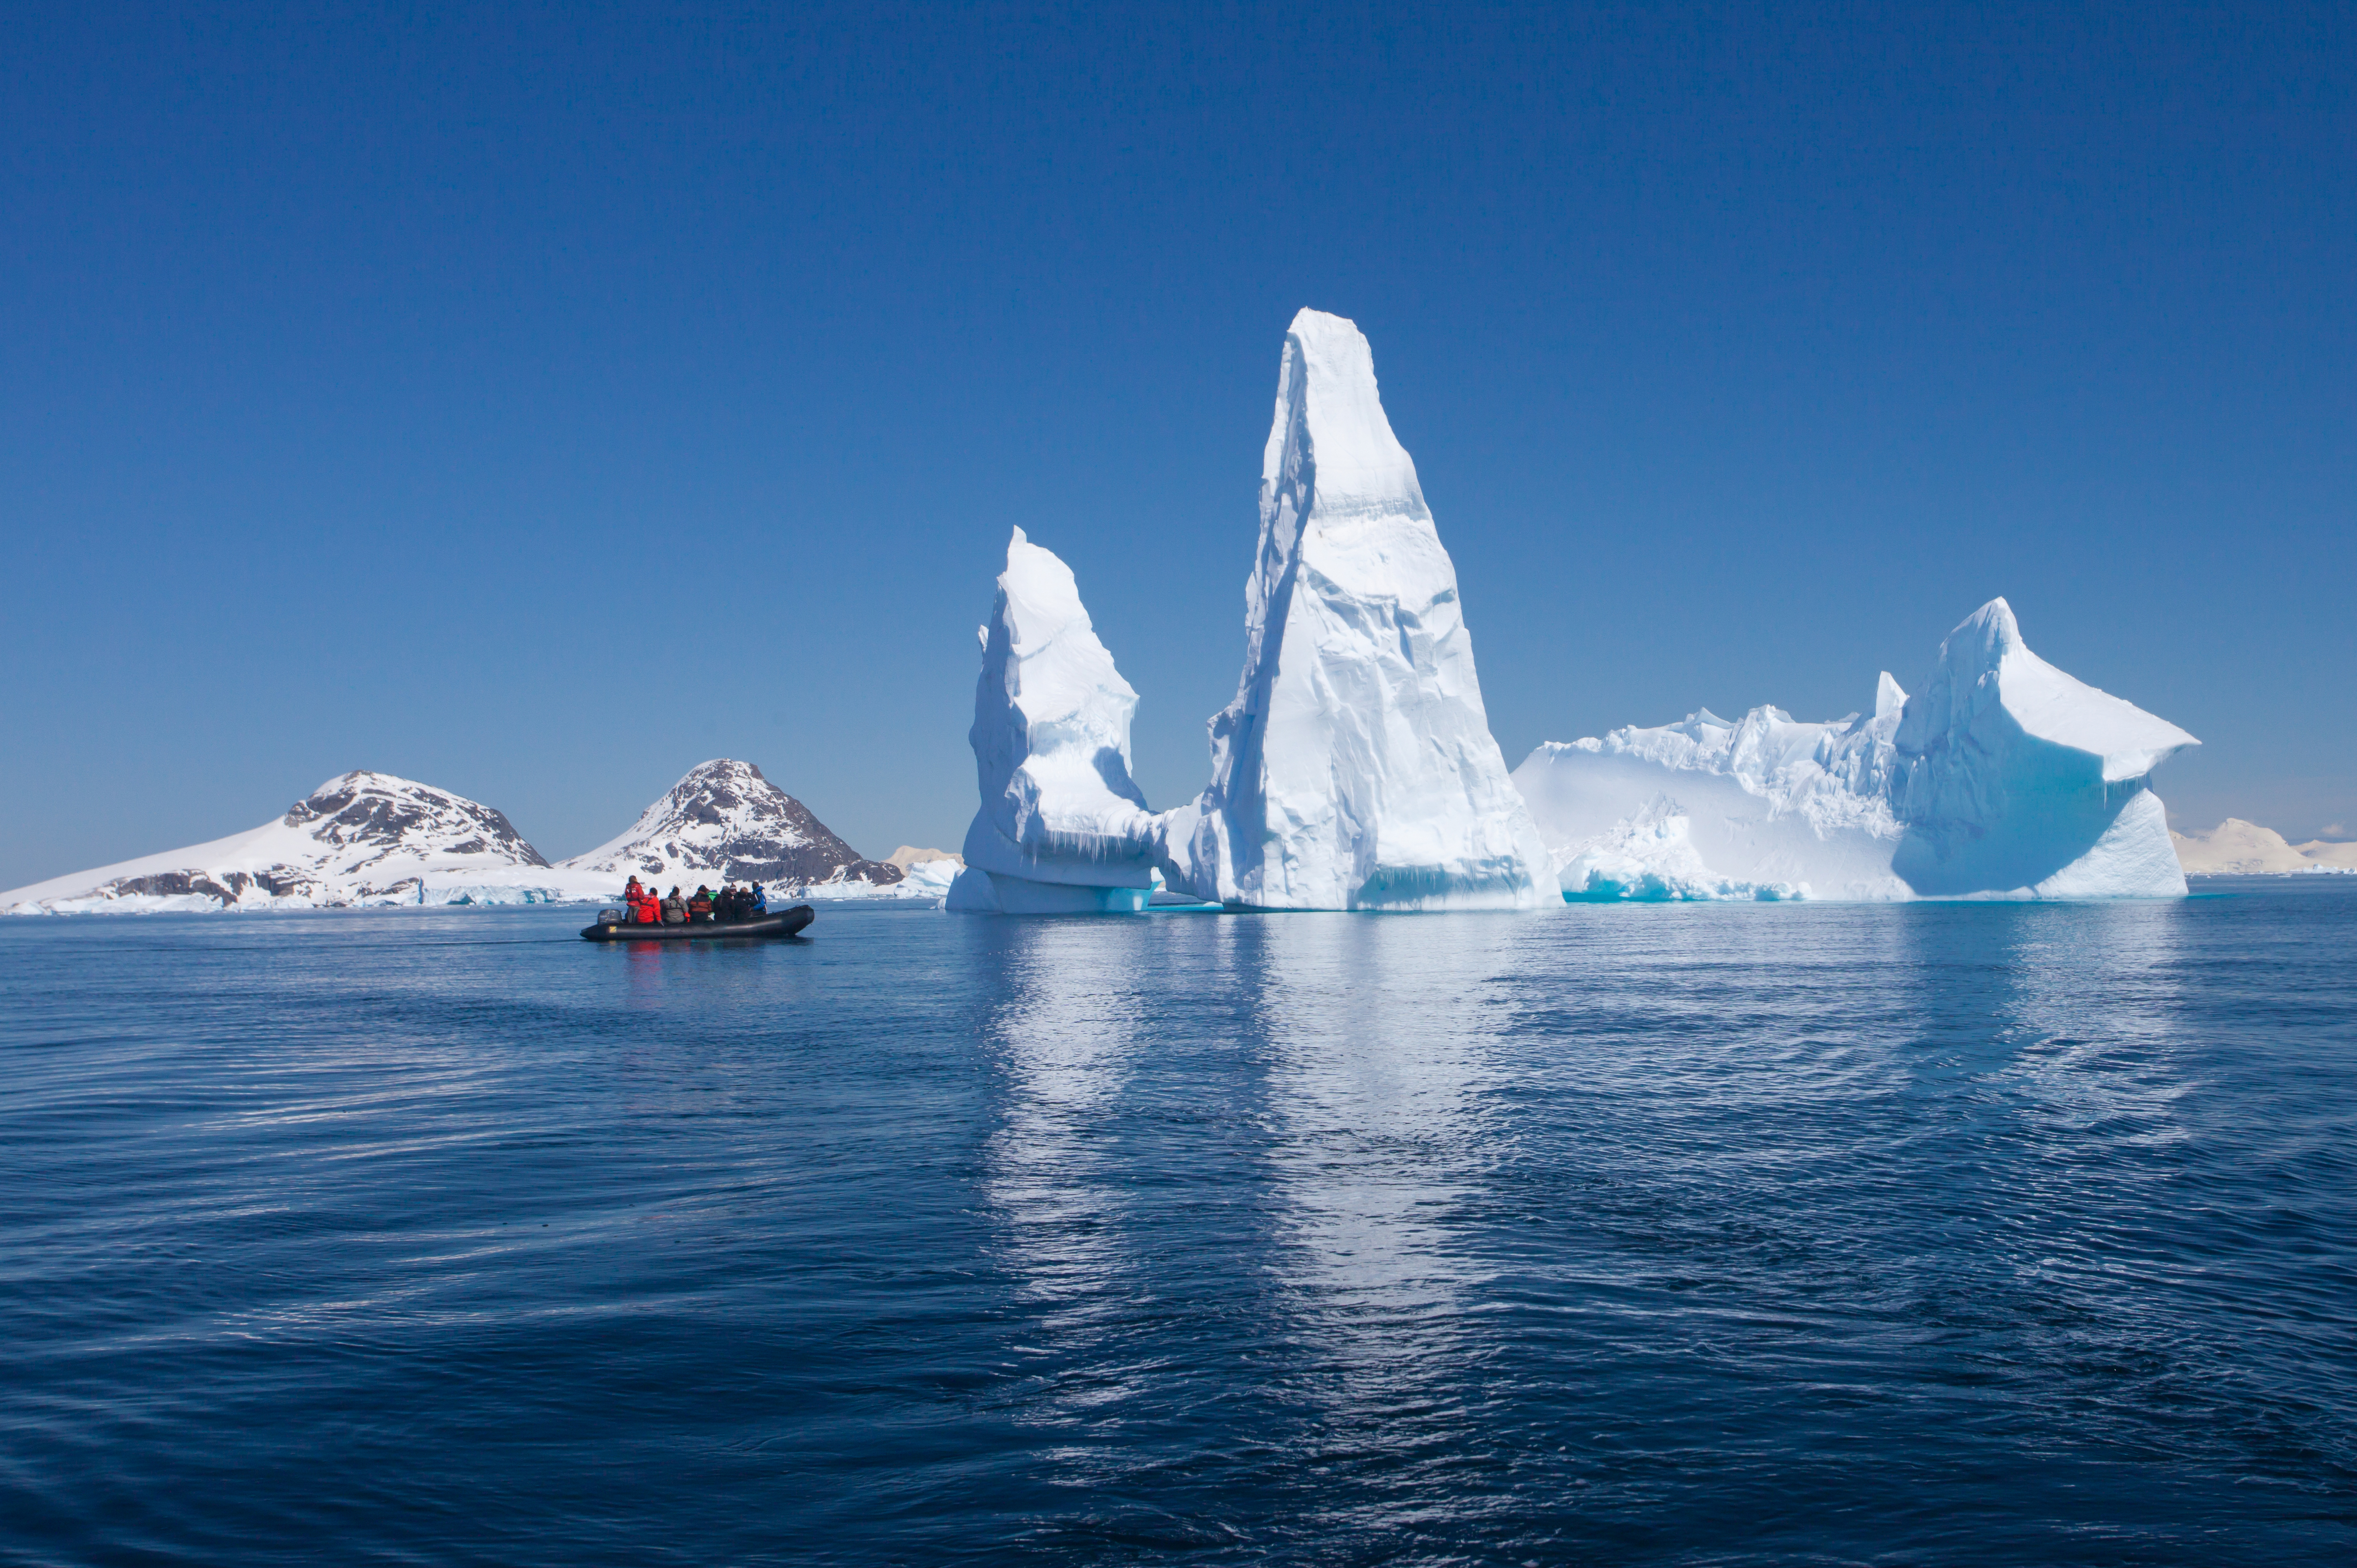 Huge iceberg and reflection in water in Antarctica